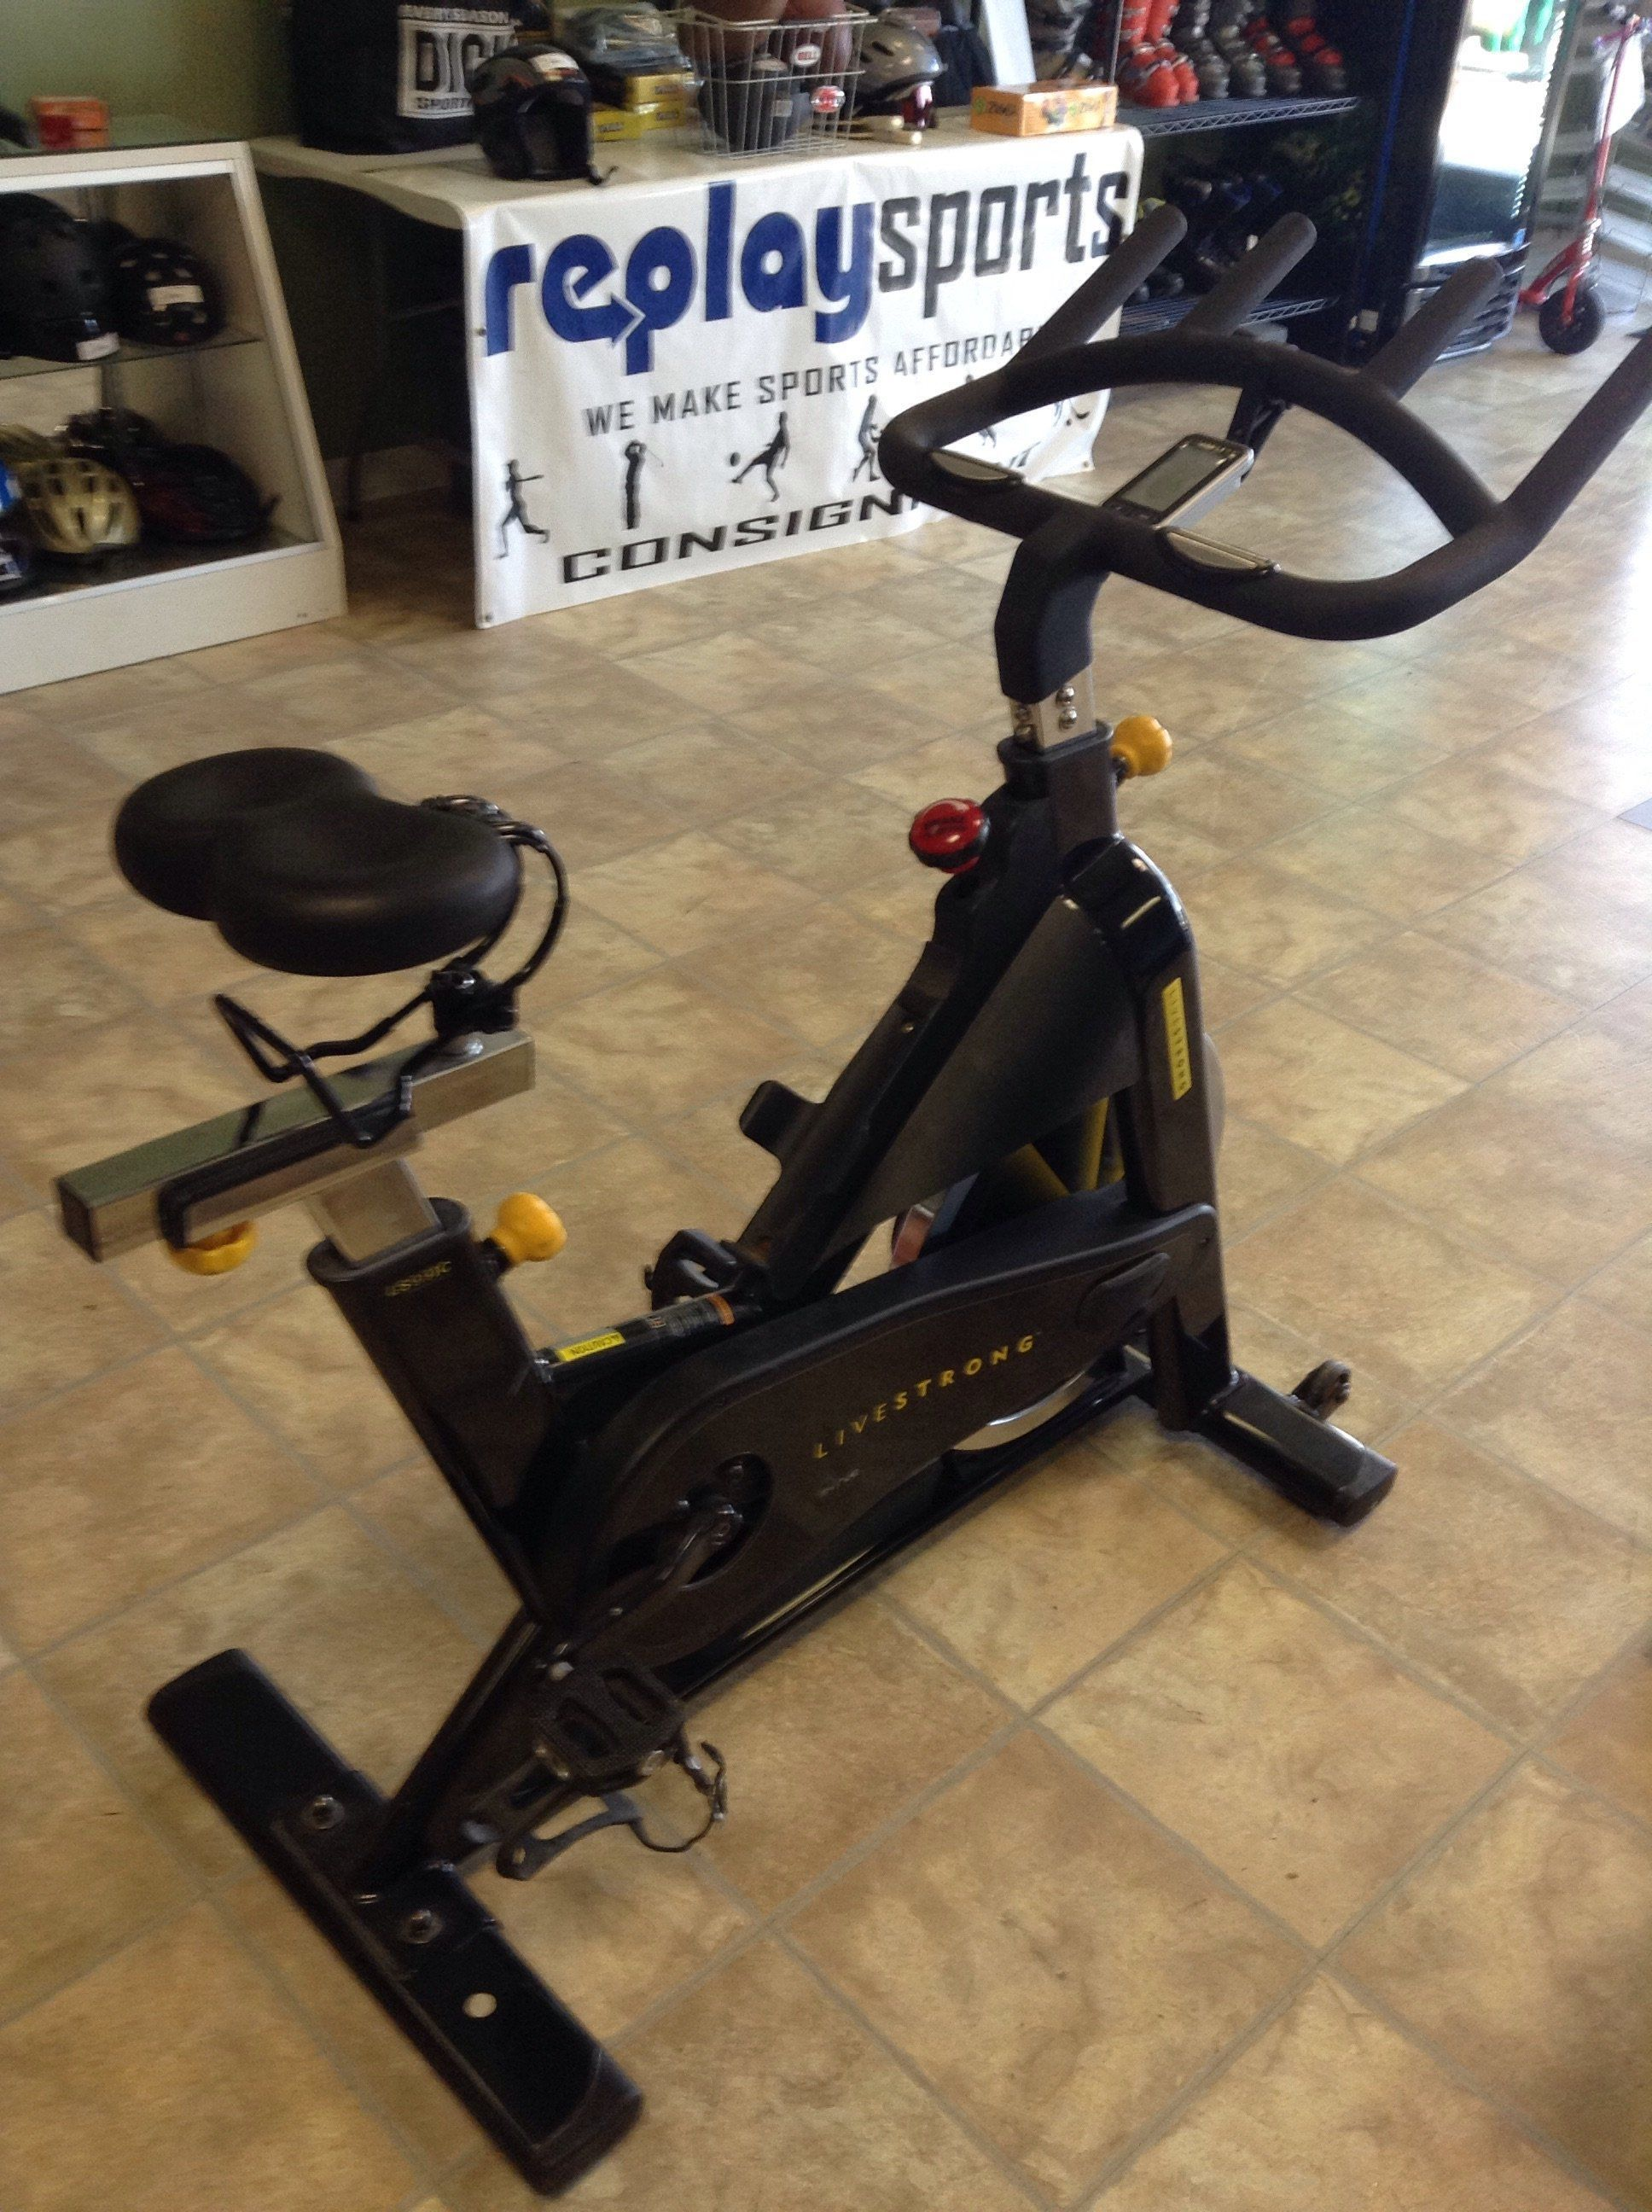 Livestrong Ls9 9ic Spin Bike Spin Bikes Bike Livestrong